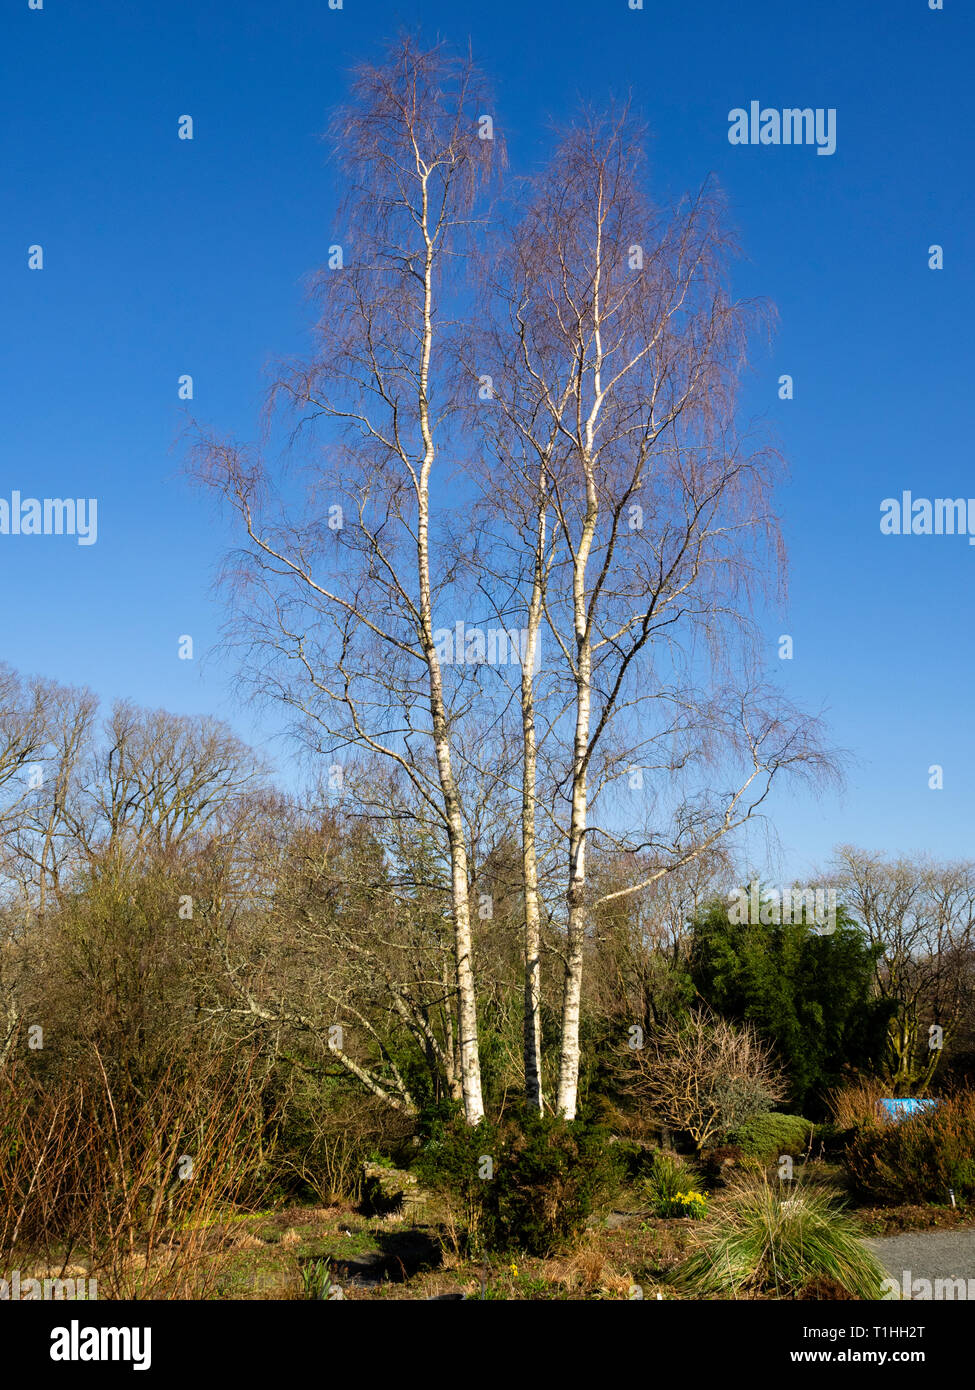 Winter bare weeping branches from upright growth in the hardy, silver barked birch, Betula pendula 'Tristis' - Stock Image